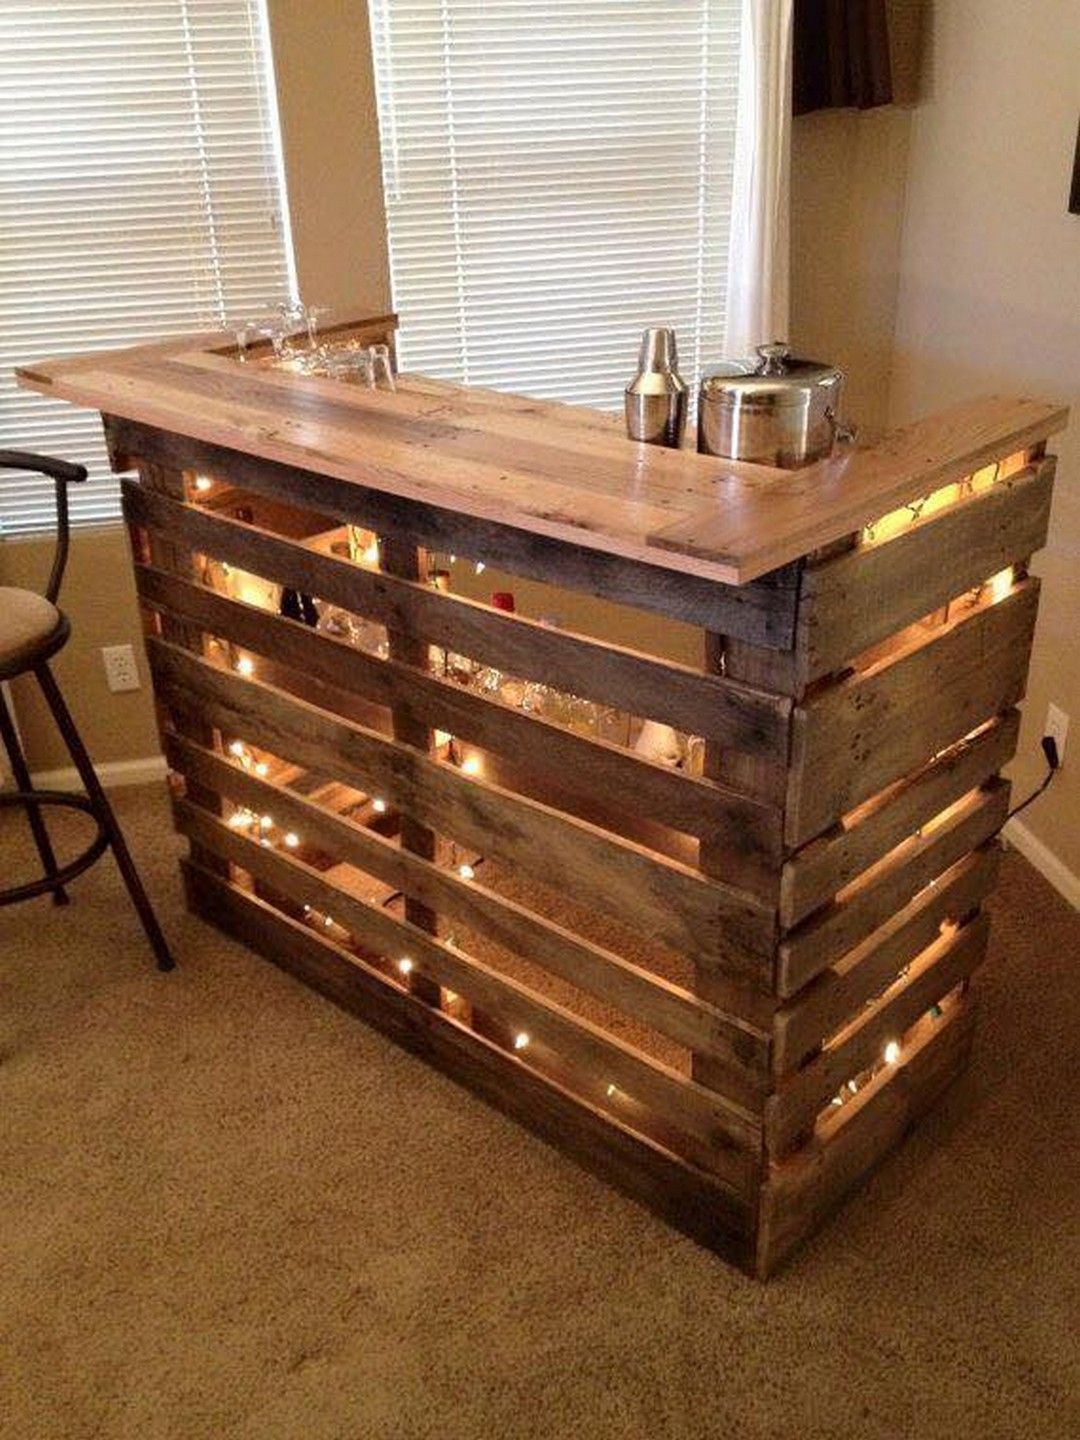 cool 99 awesome diy home decor rustic ideas in 2017 http://www